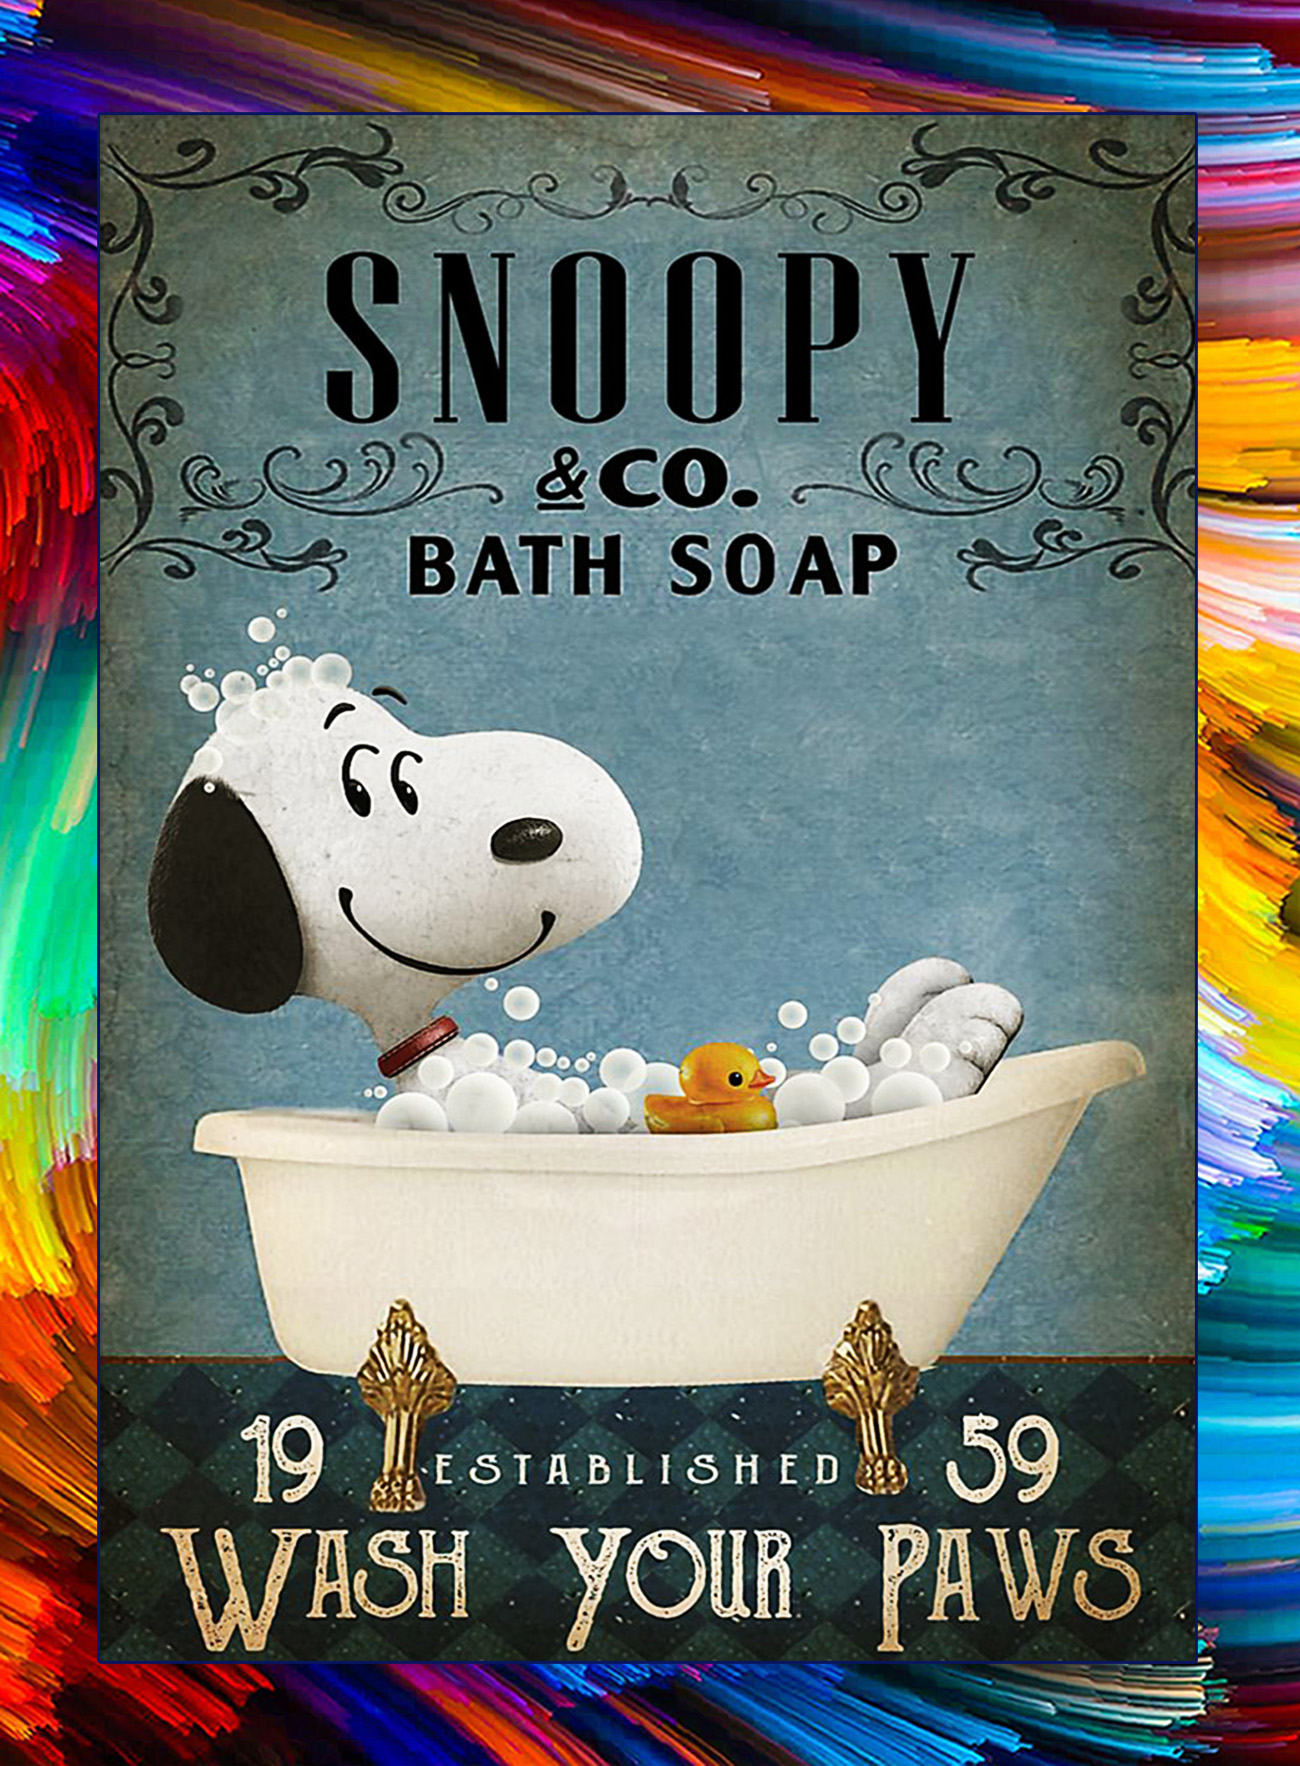 Snoopy co bath soap wash your paws poster - A1